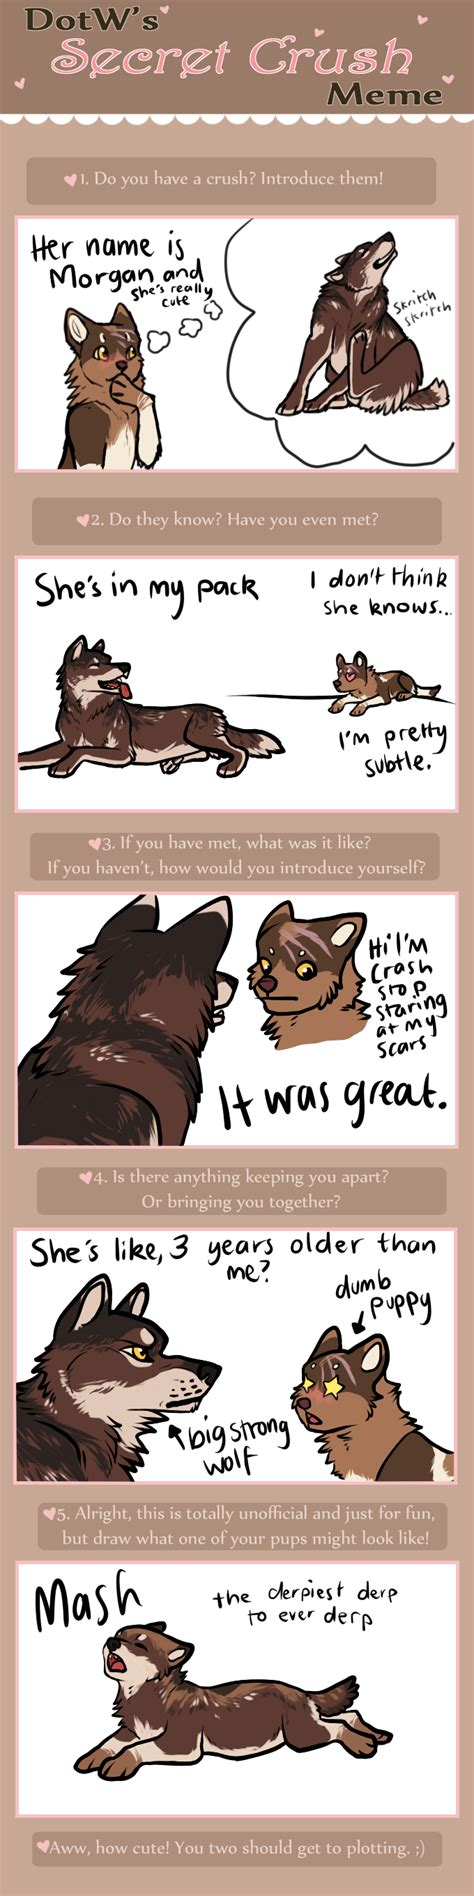 Secret Crush Meme - dotw secret crush meme by kiterrax on deviantart